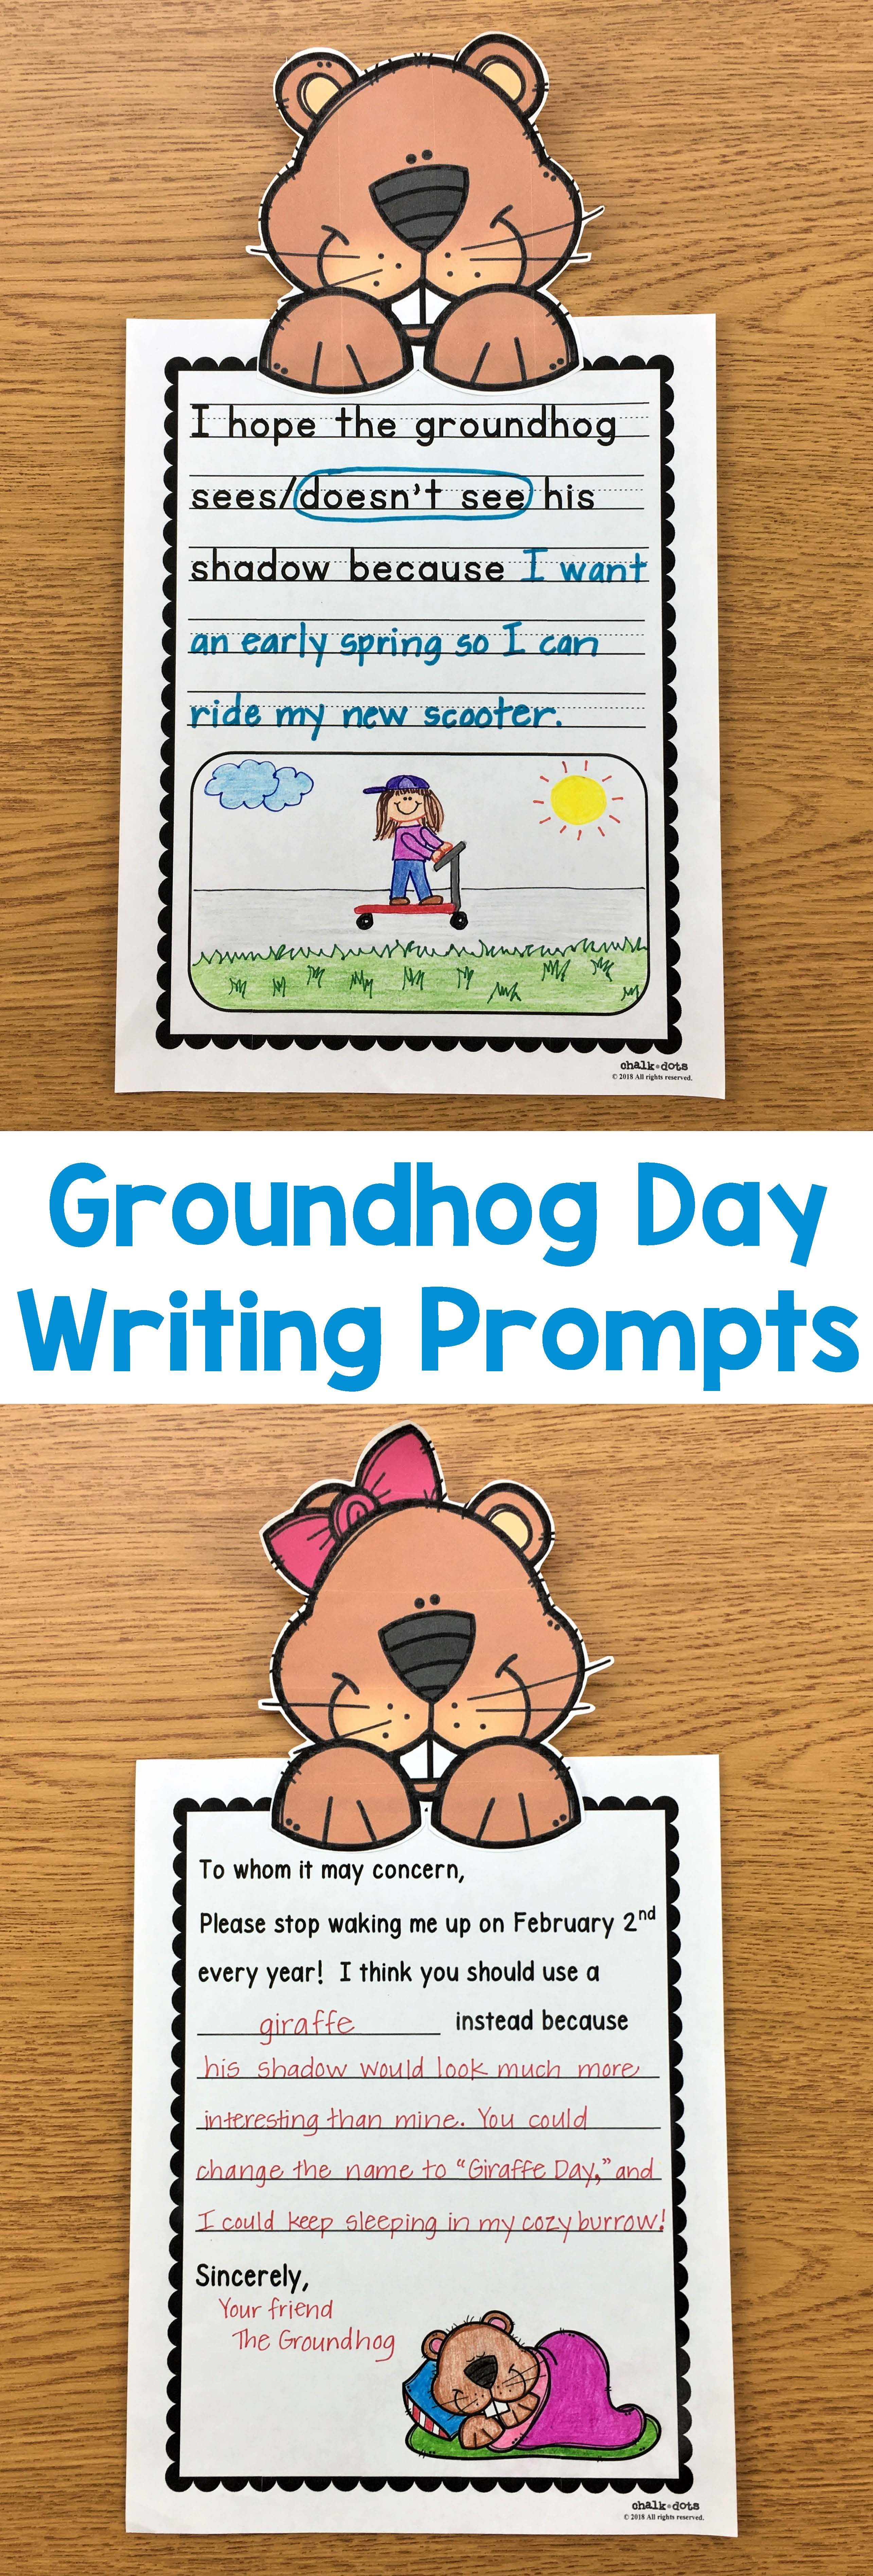 Groundhog Day Writing Prompts These Cute Writing Prompts Are Great To Use Anytime During The Groundhog Day Activities Kindergarten Groundhog Day Cute Writing [ 7582 x 2570 Pixel ]